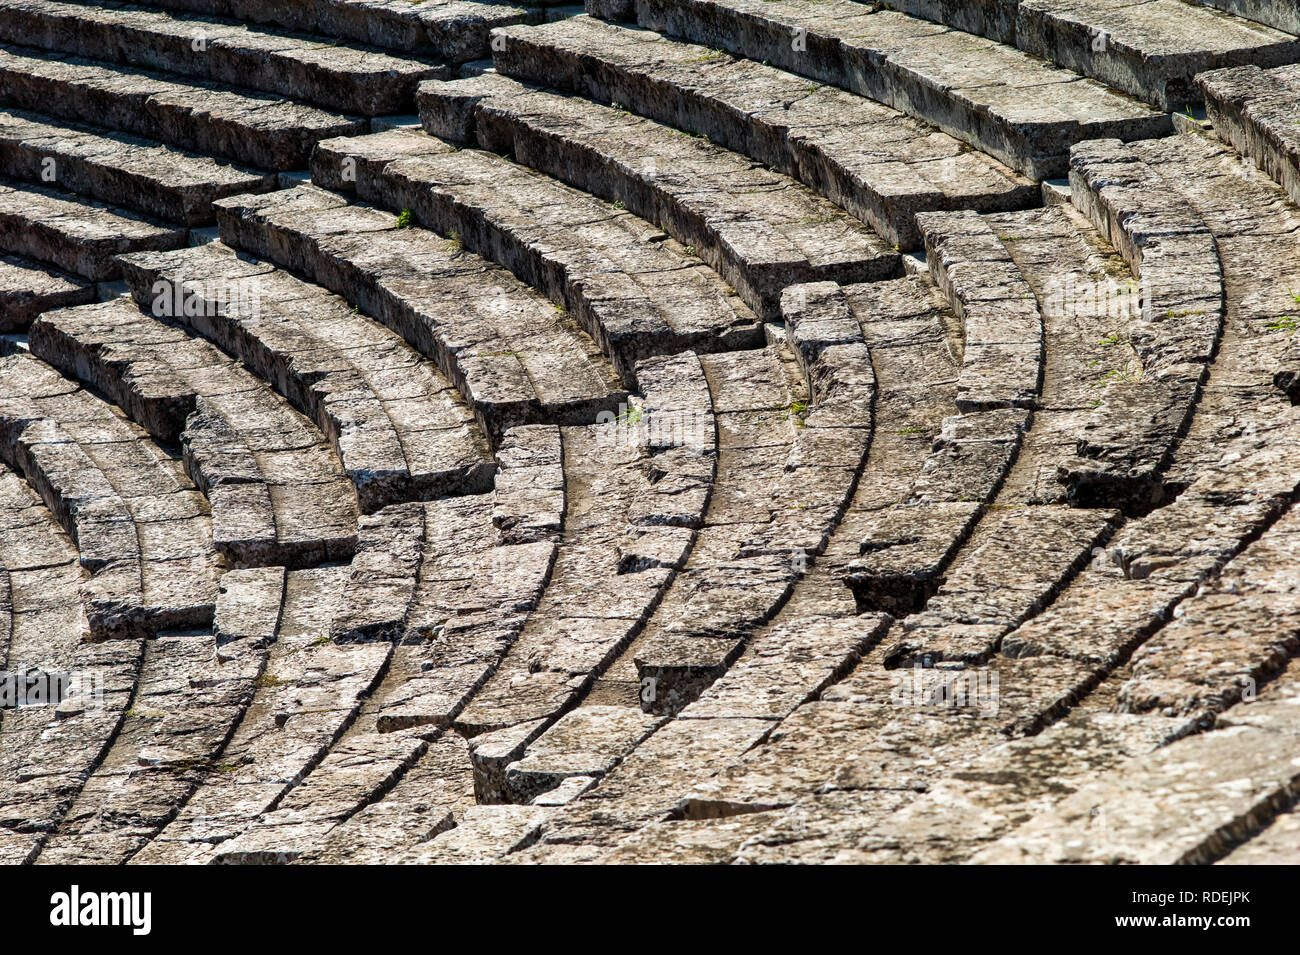 View of an ancient theatre, Greece - Stock Image